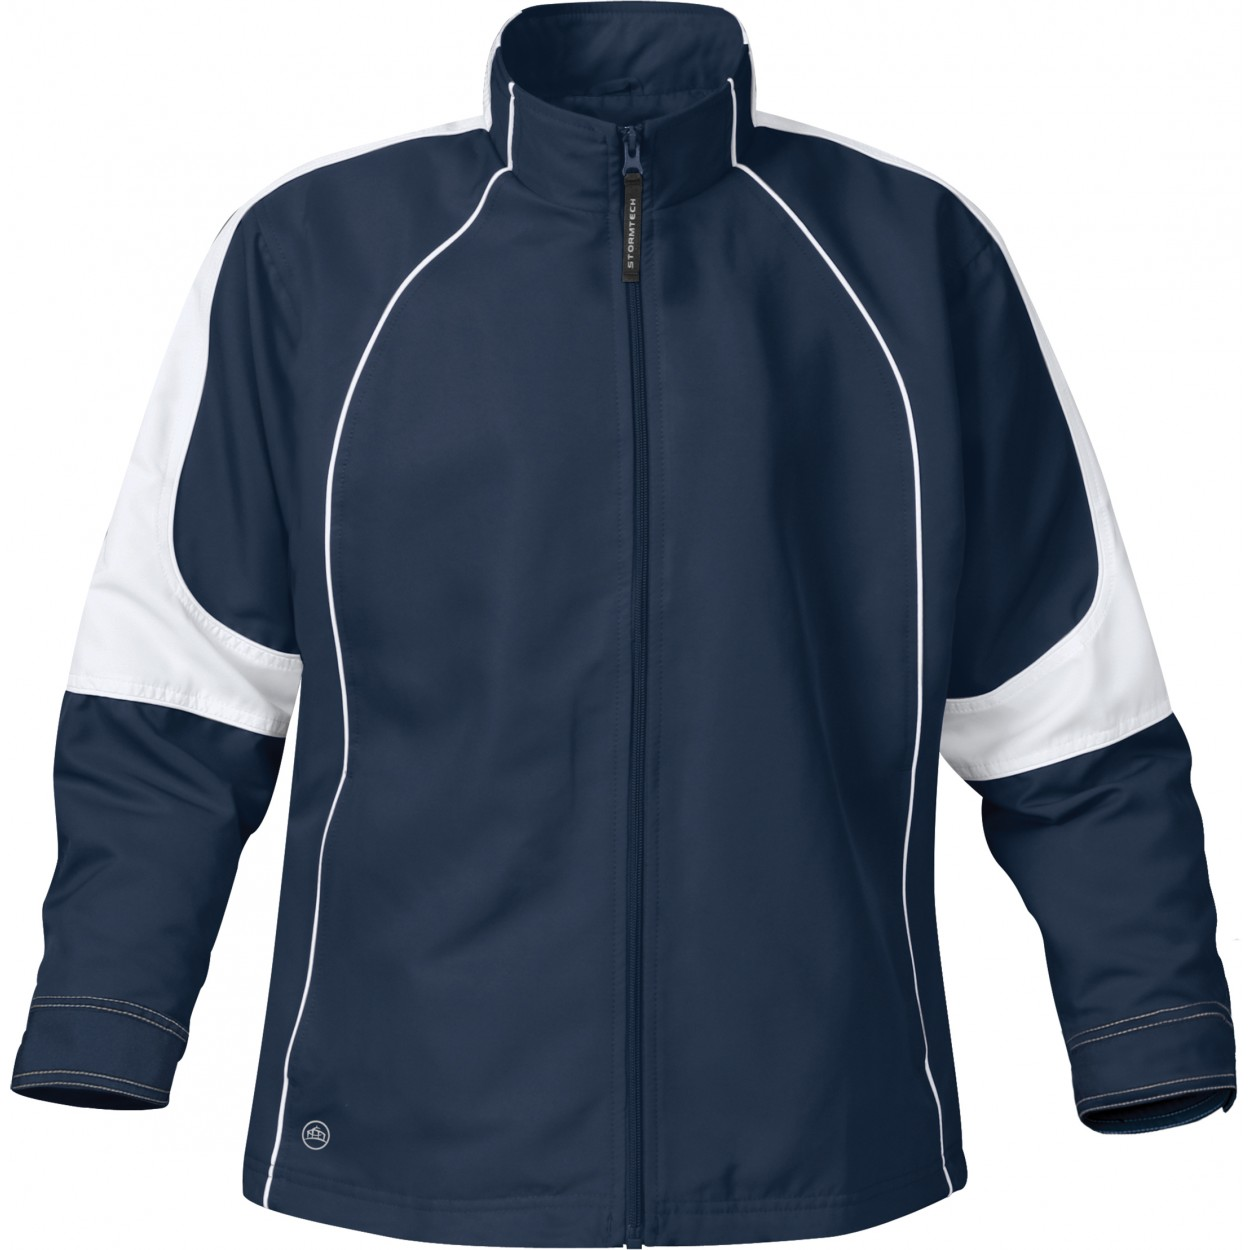 WOMEN'S - Stormtech Warm-up Jacket